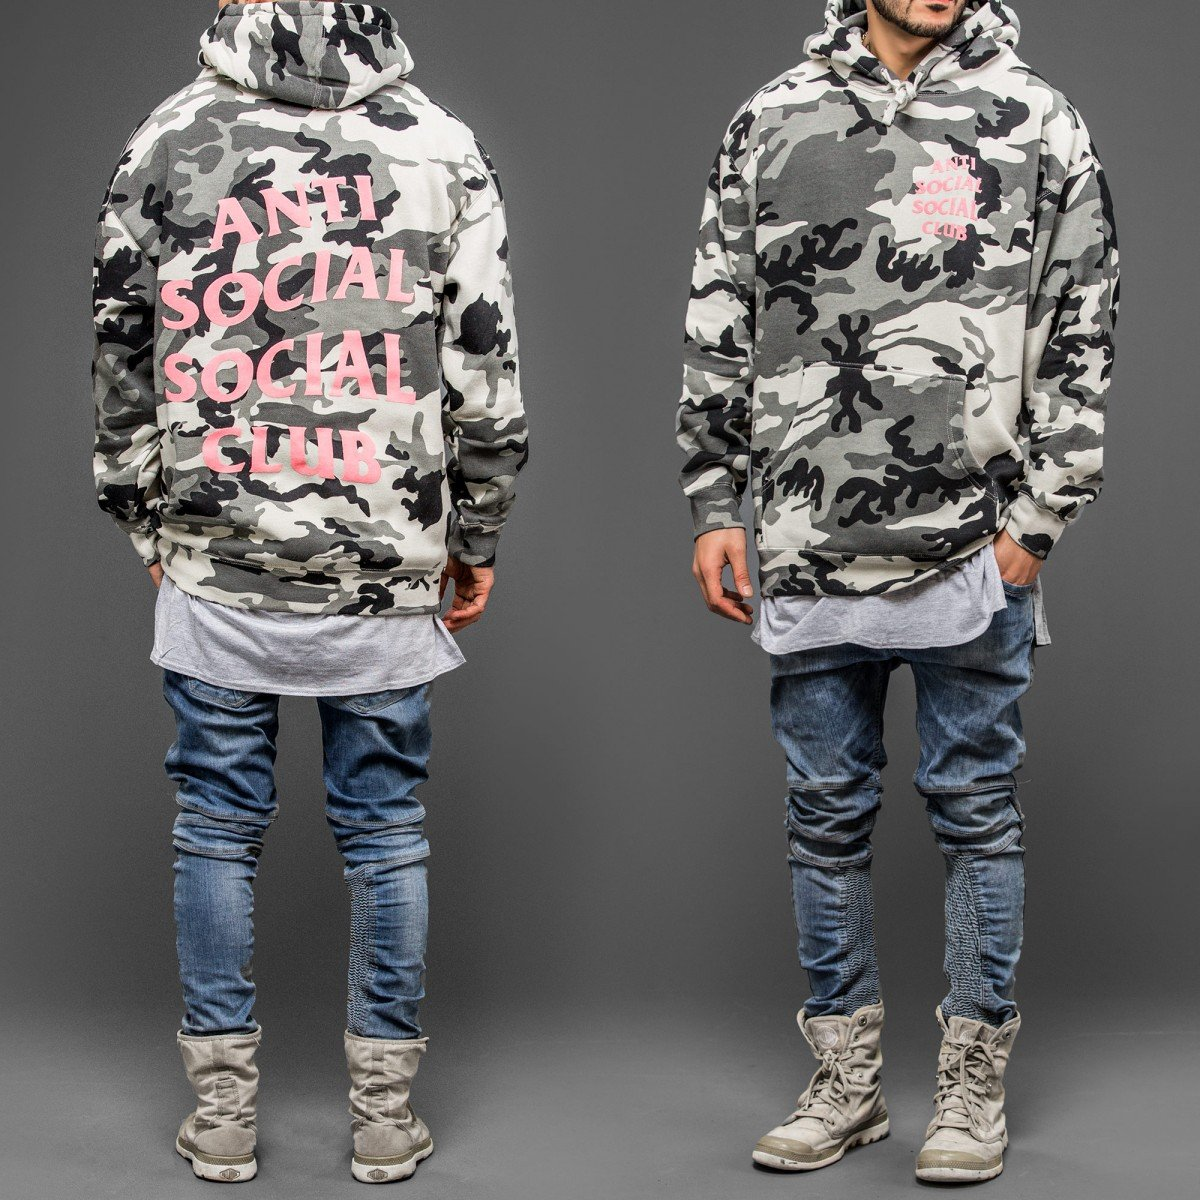 a5a6f869bce2 Kardiance Snow Camo Anti Social Social Club ASSC Hoodie Hoody   Amazon.co.uk  Clothing